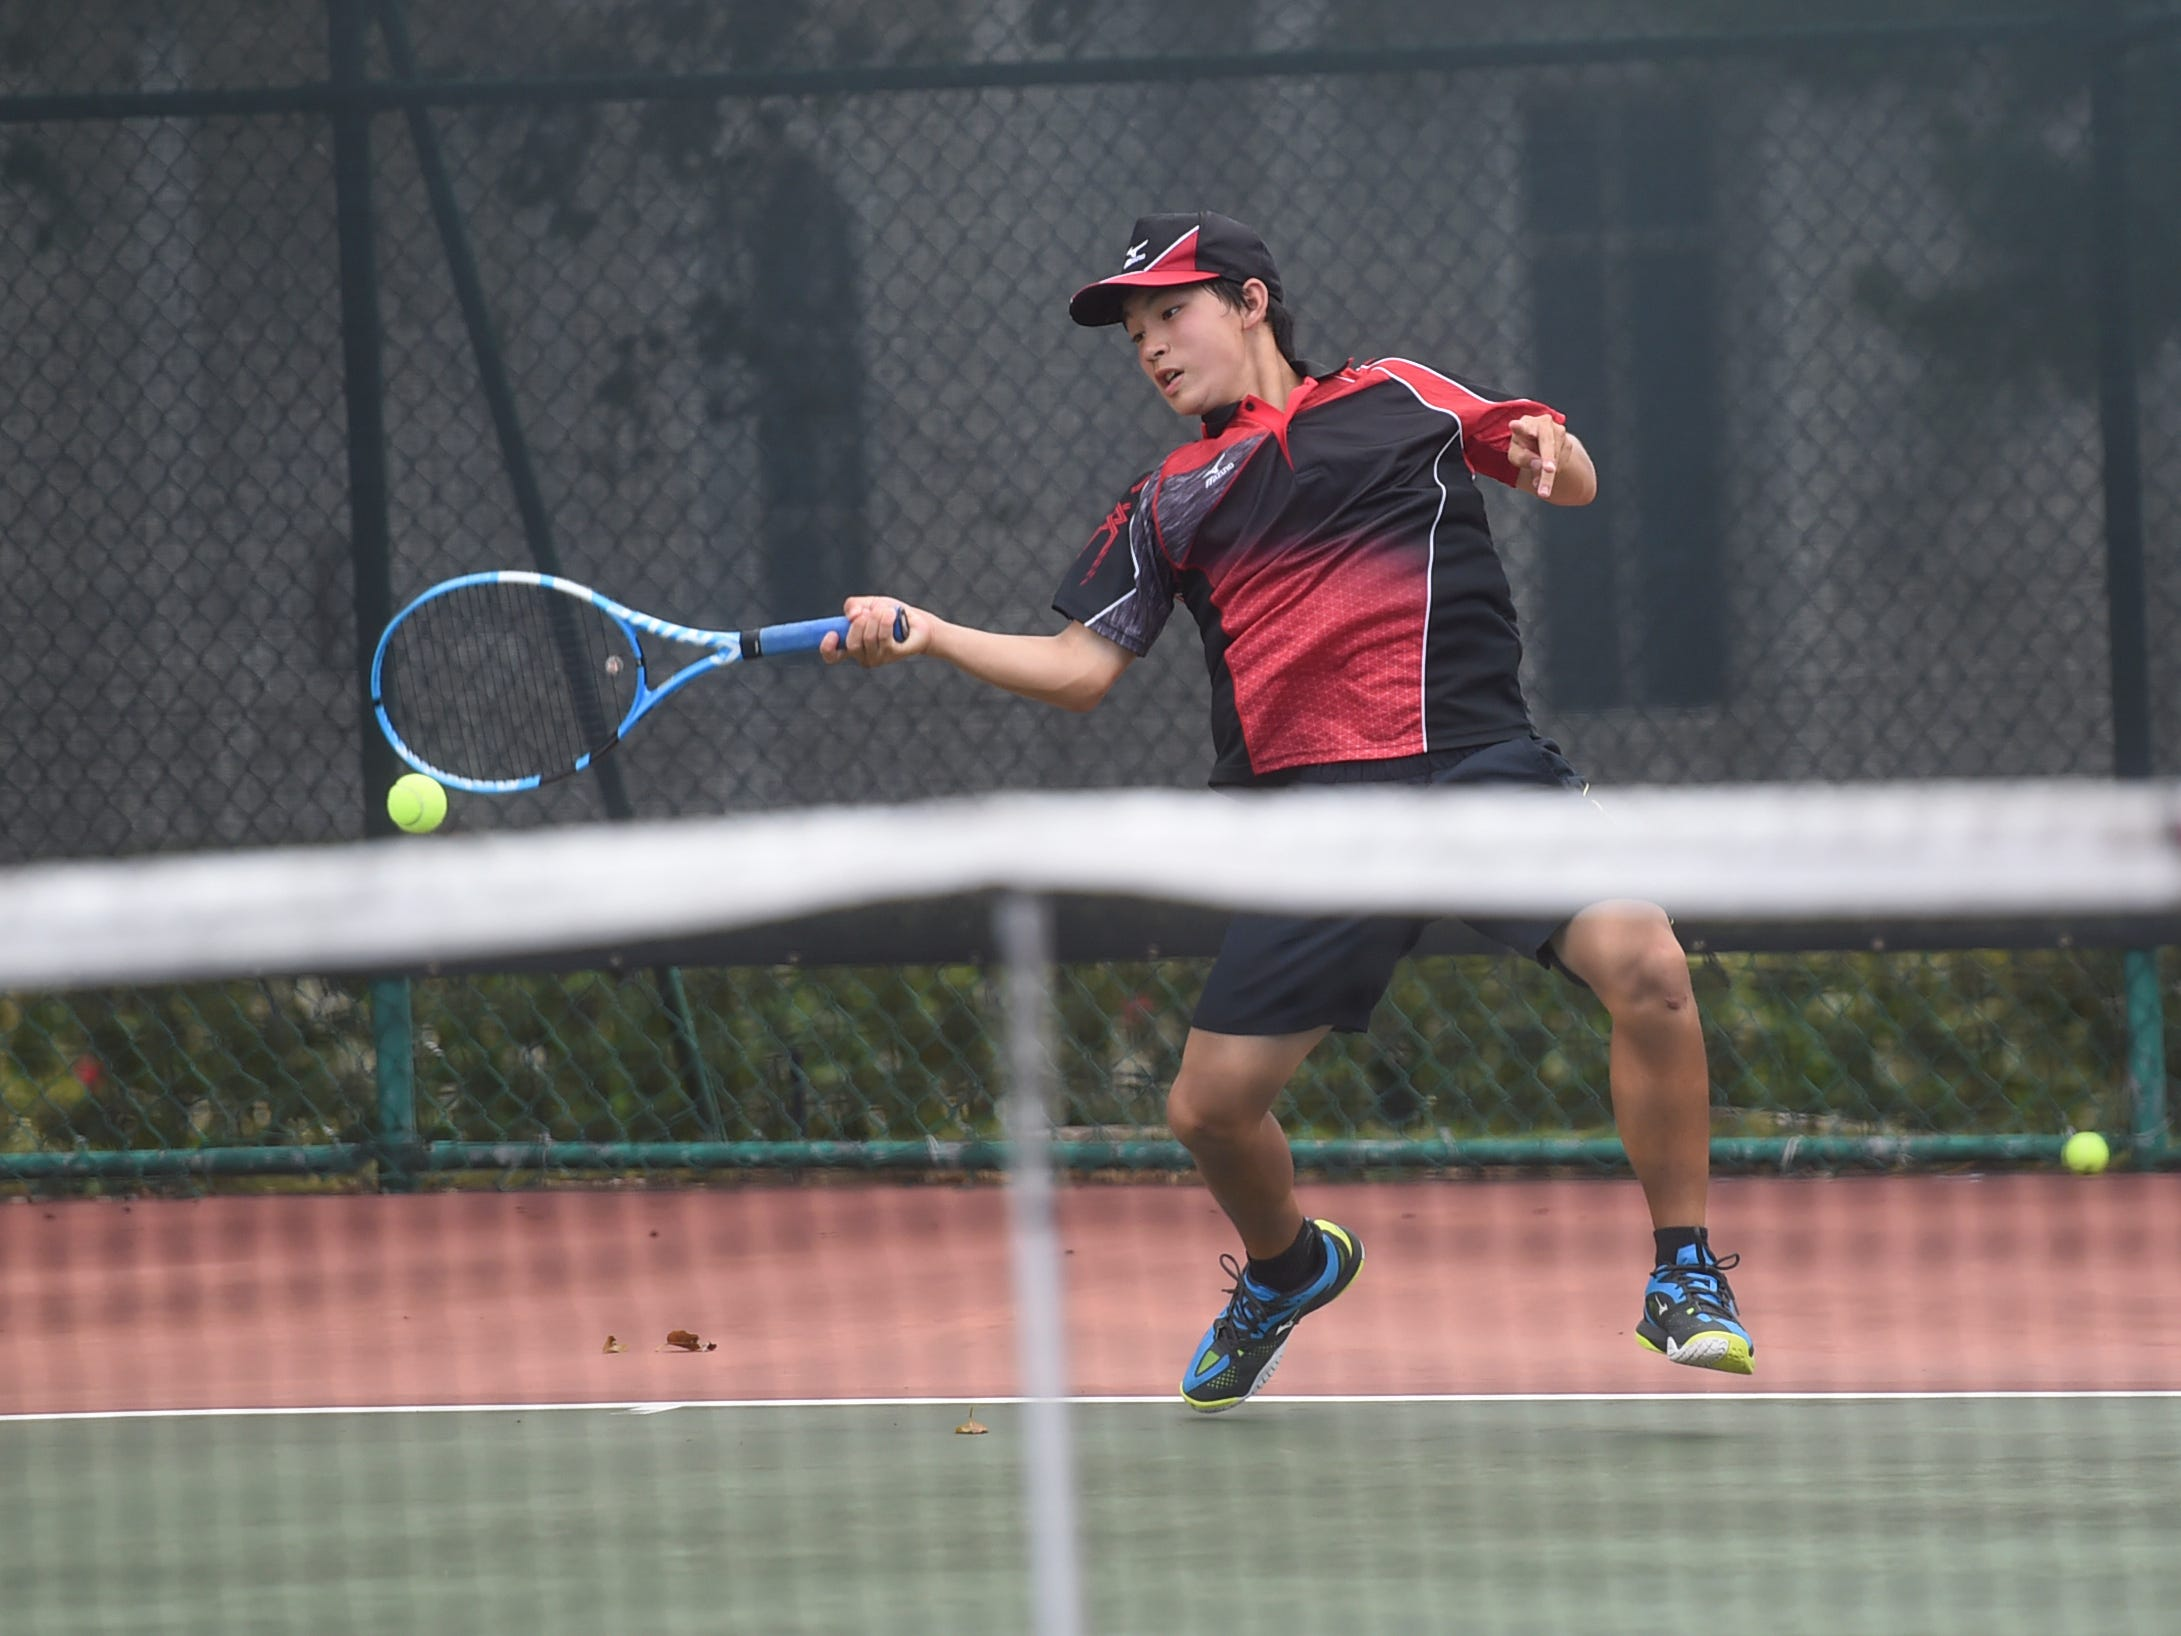 Tomoki Hanahara with a forehand shot during his 2019 Chuck E Cheese ITF World Tennis Tour Juniors qualifying match at the Hilton Guam Resort and Spa in Tumon, May 12, 2019.